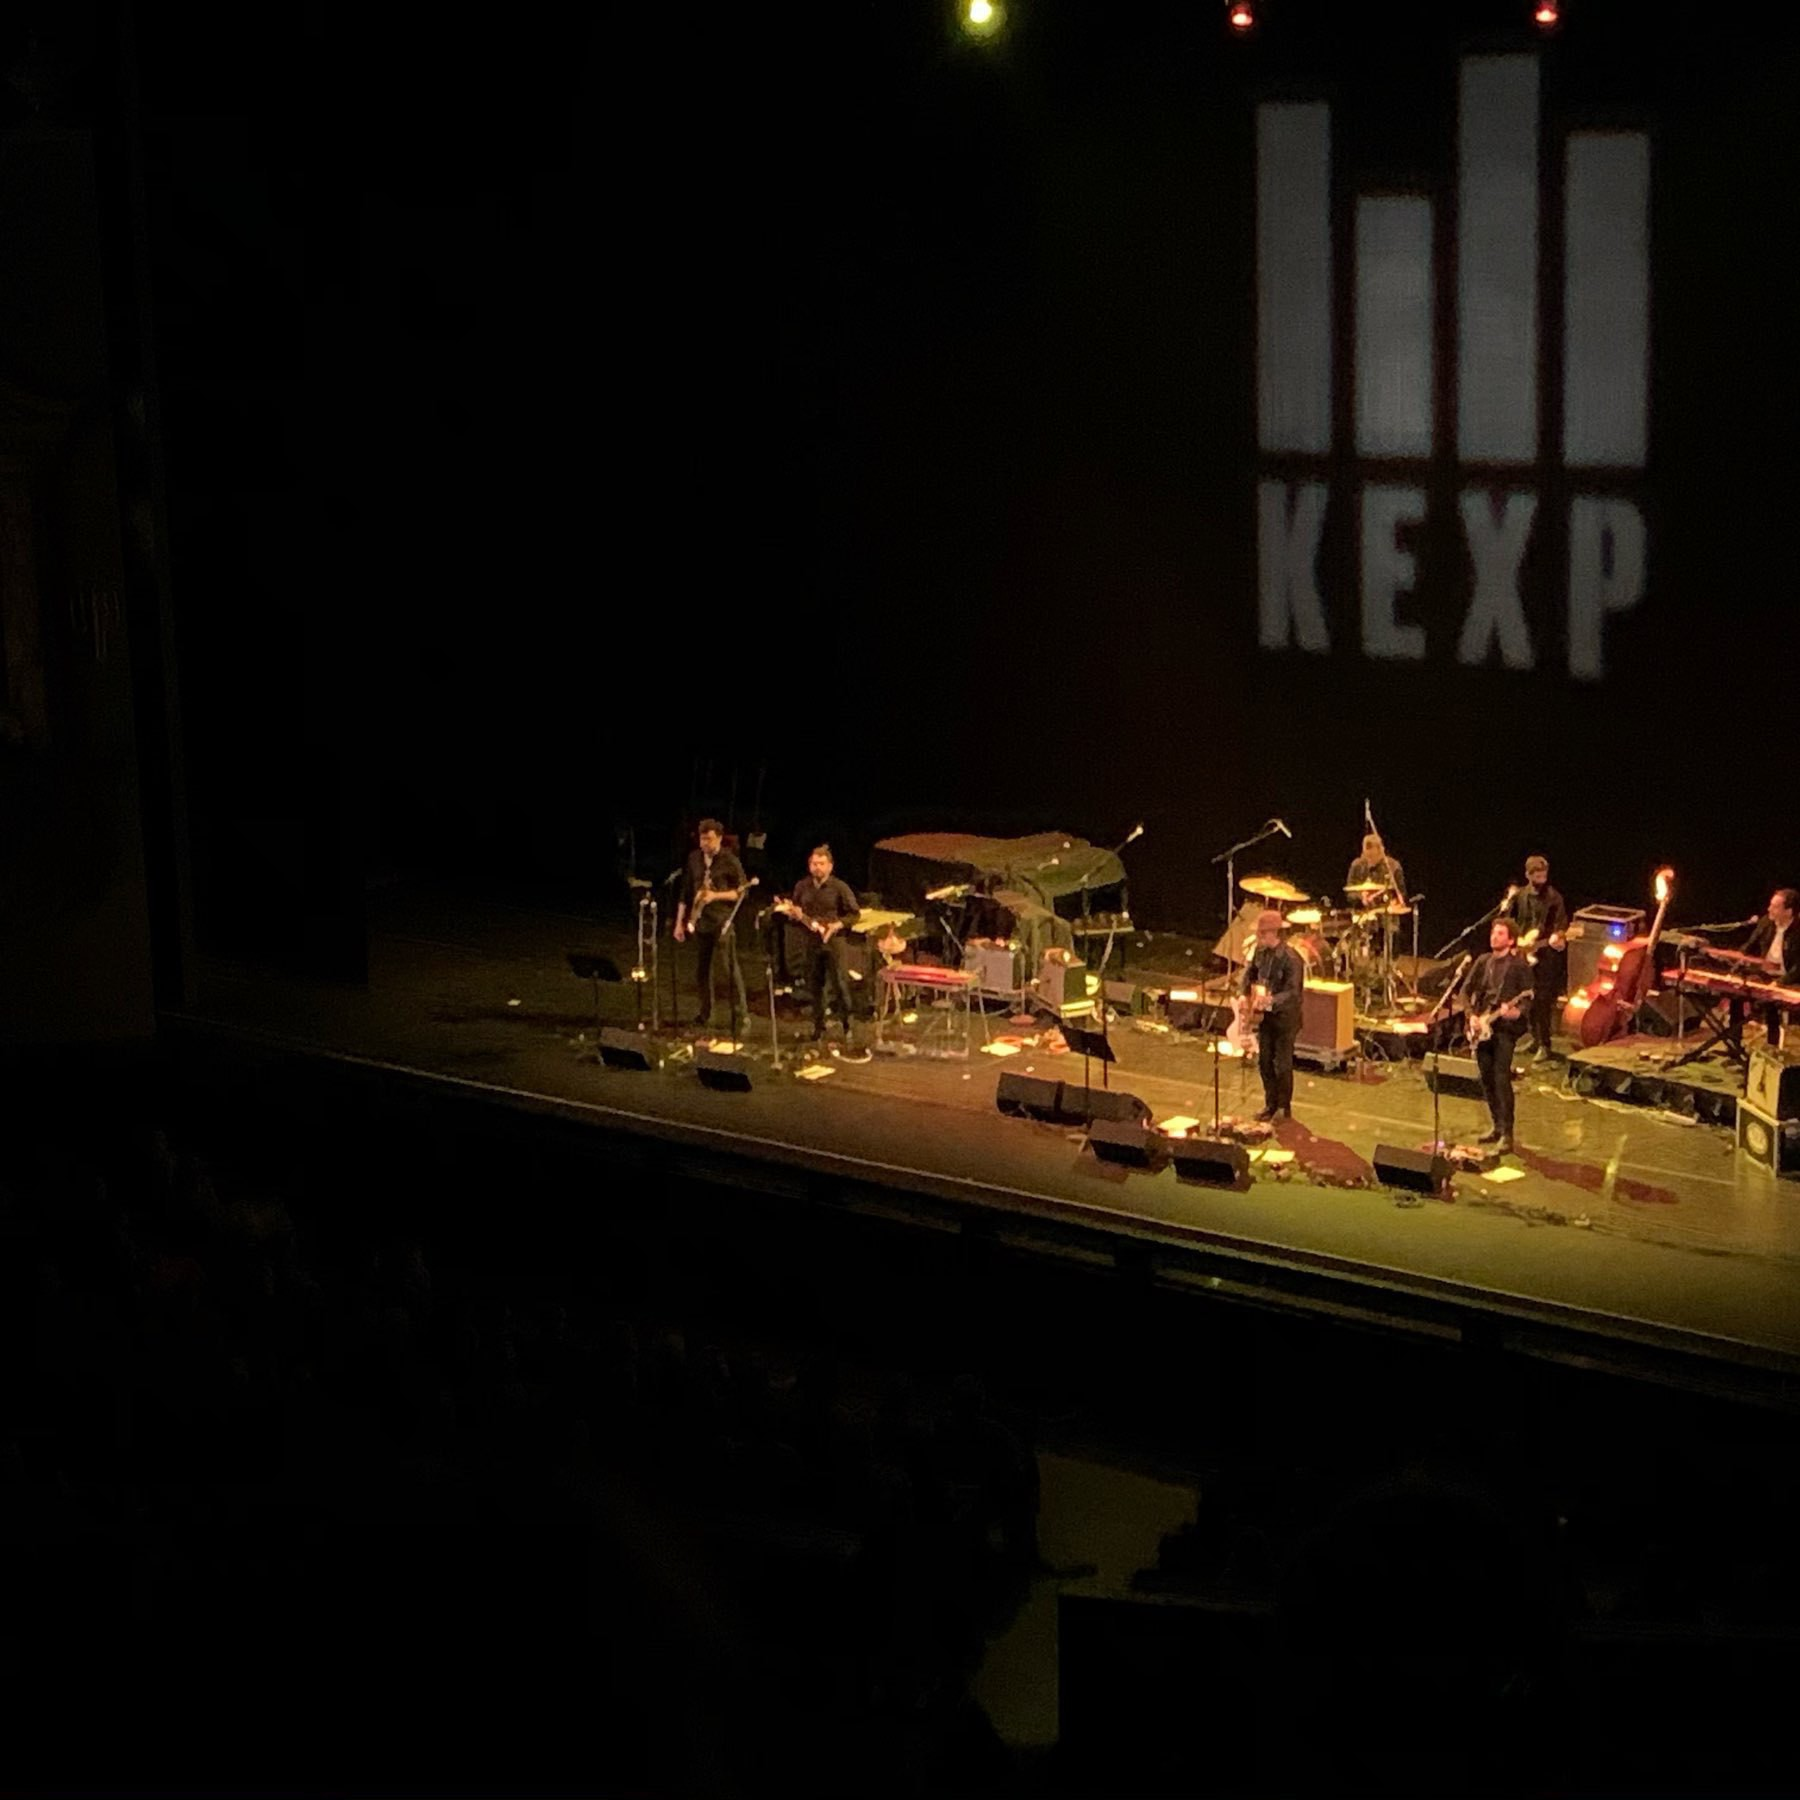 Calexico performing on stage, projected on the backdrop is the KEXP FM logo